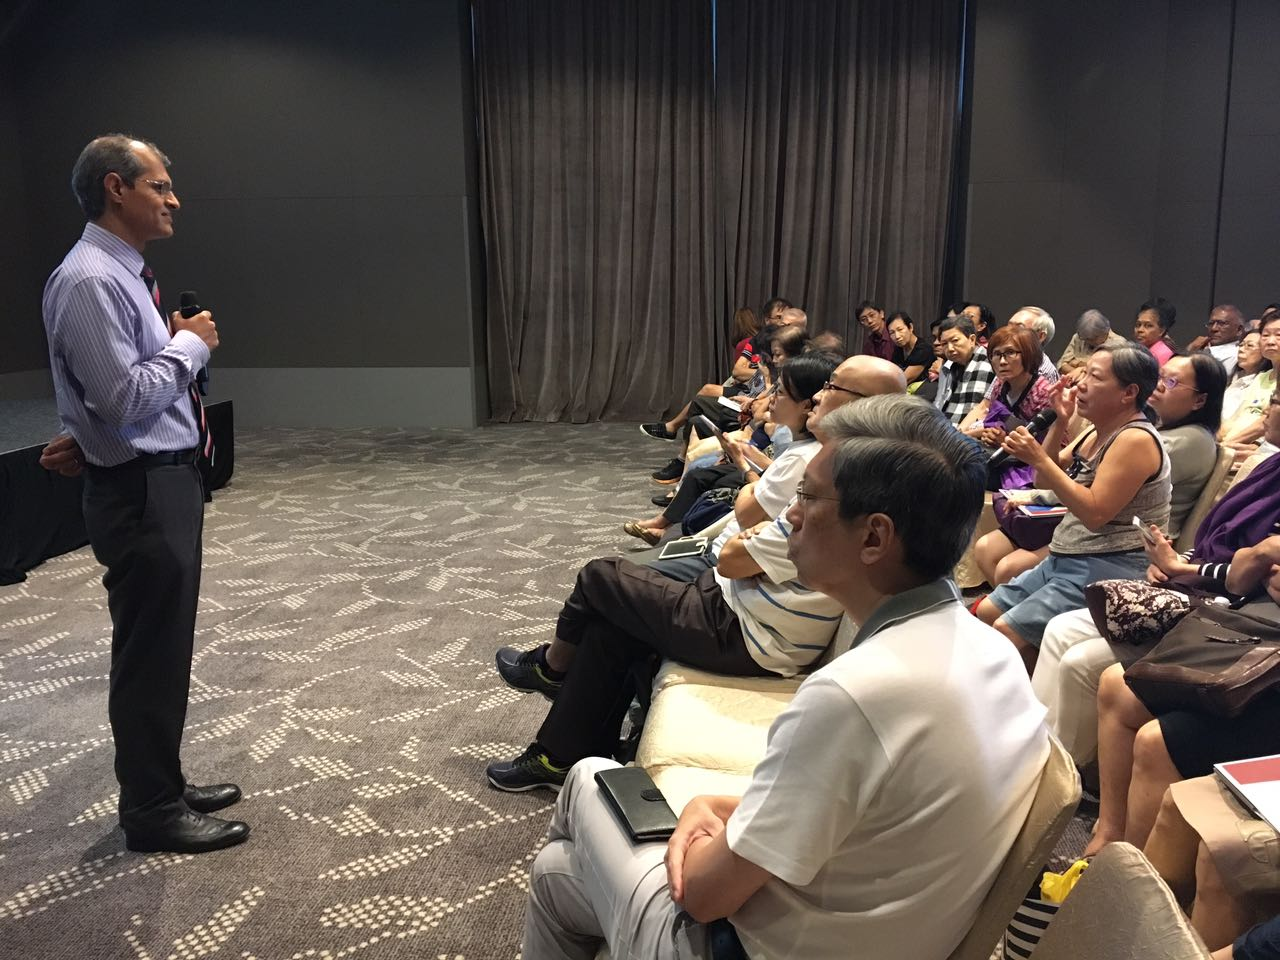 """Dr Ajeet Madhav Wagle answering a question from a participant during the """"Better Health, Living Well"""" free public forum on 24 June 2017 organised by Farrer Park Hospital."""